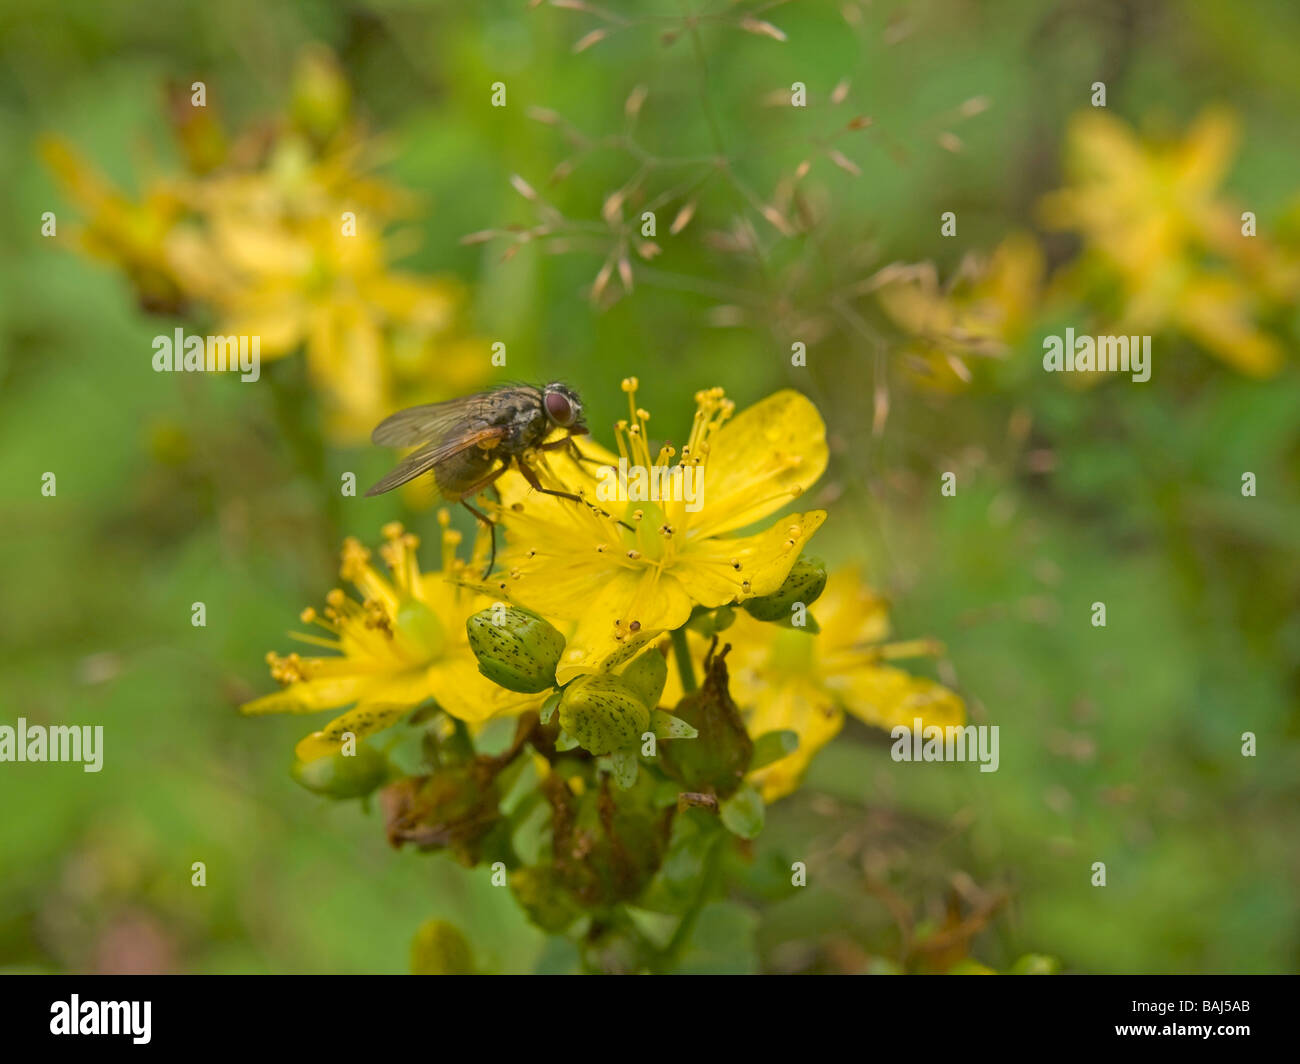 blossoms of St Johns wort Hypericum perforatum with bee medicinal plant used as therapy against depressions and - Stock Image